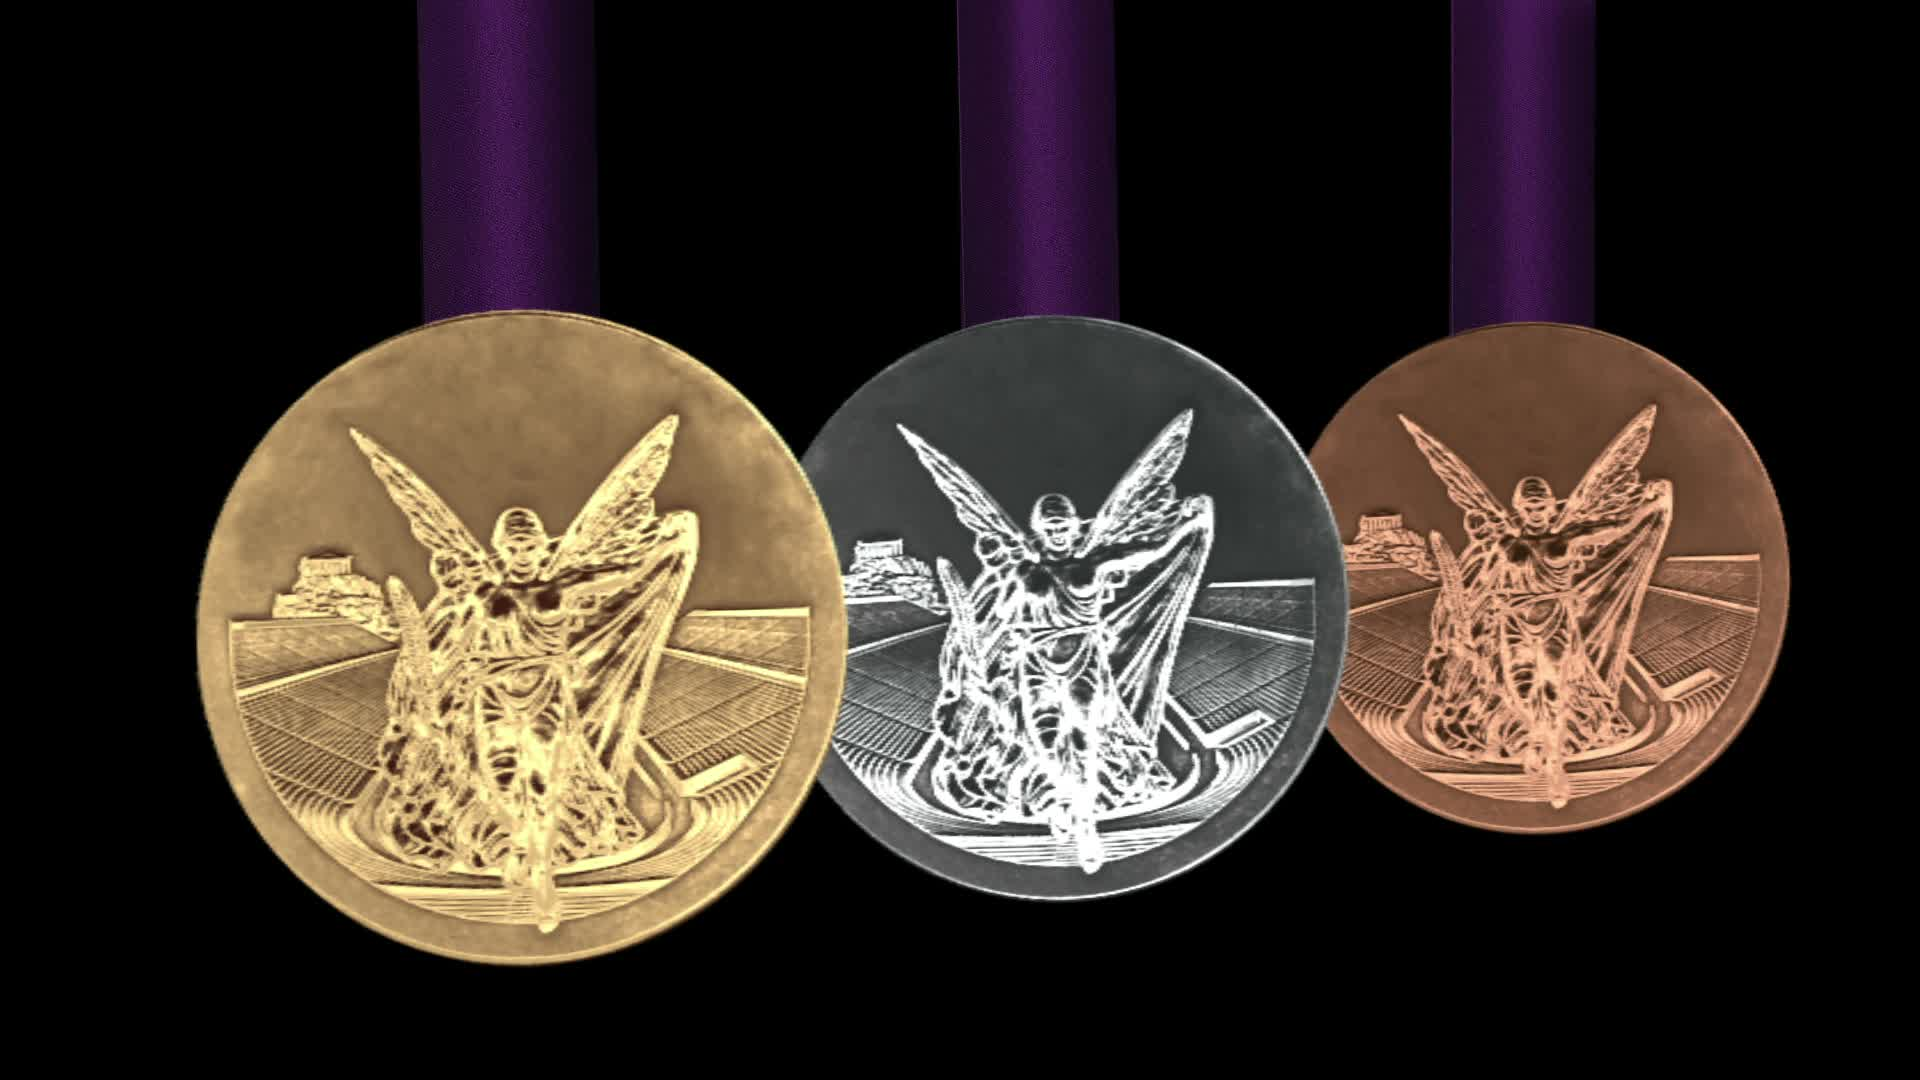 1920x1080 - Olympic Gold Metal Wallpapers 22